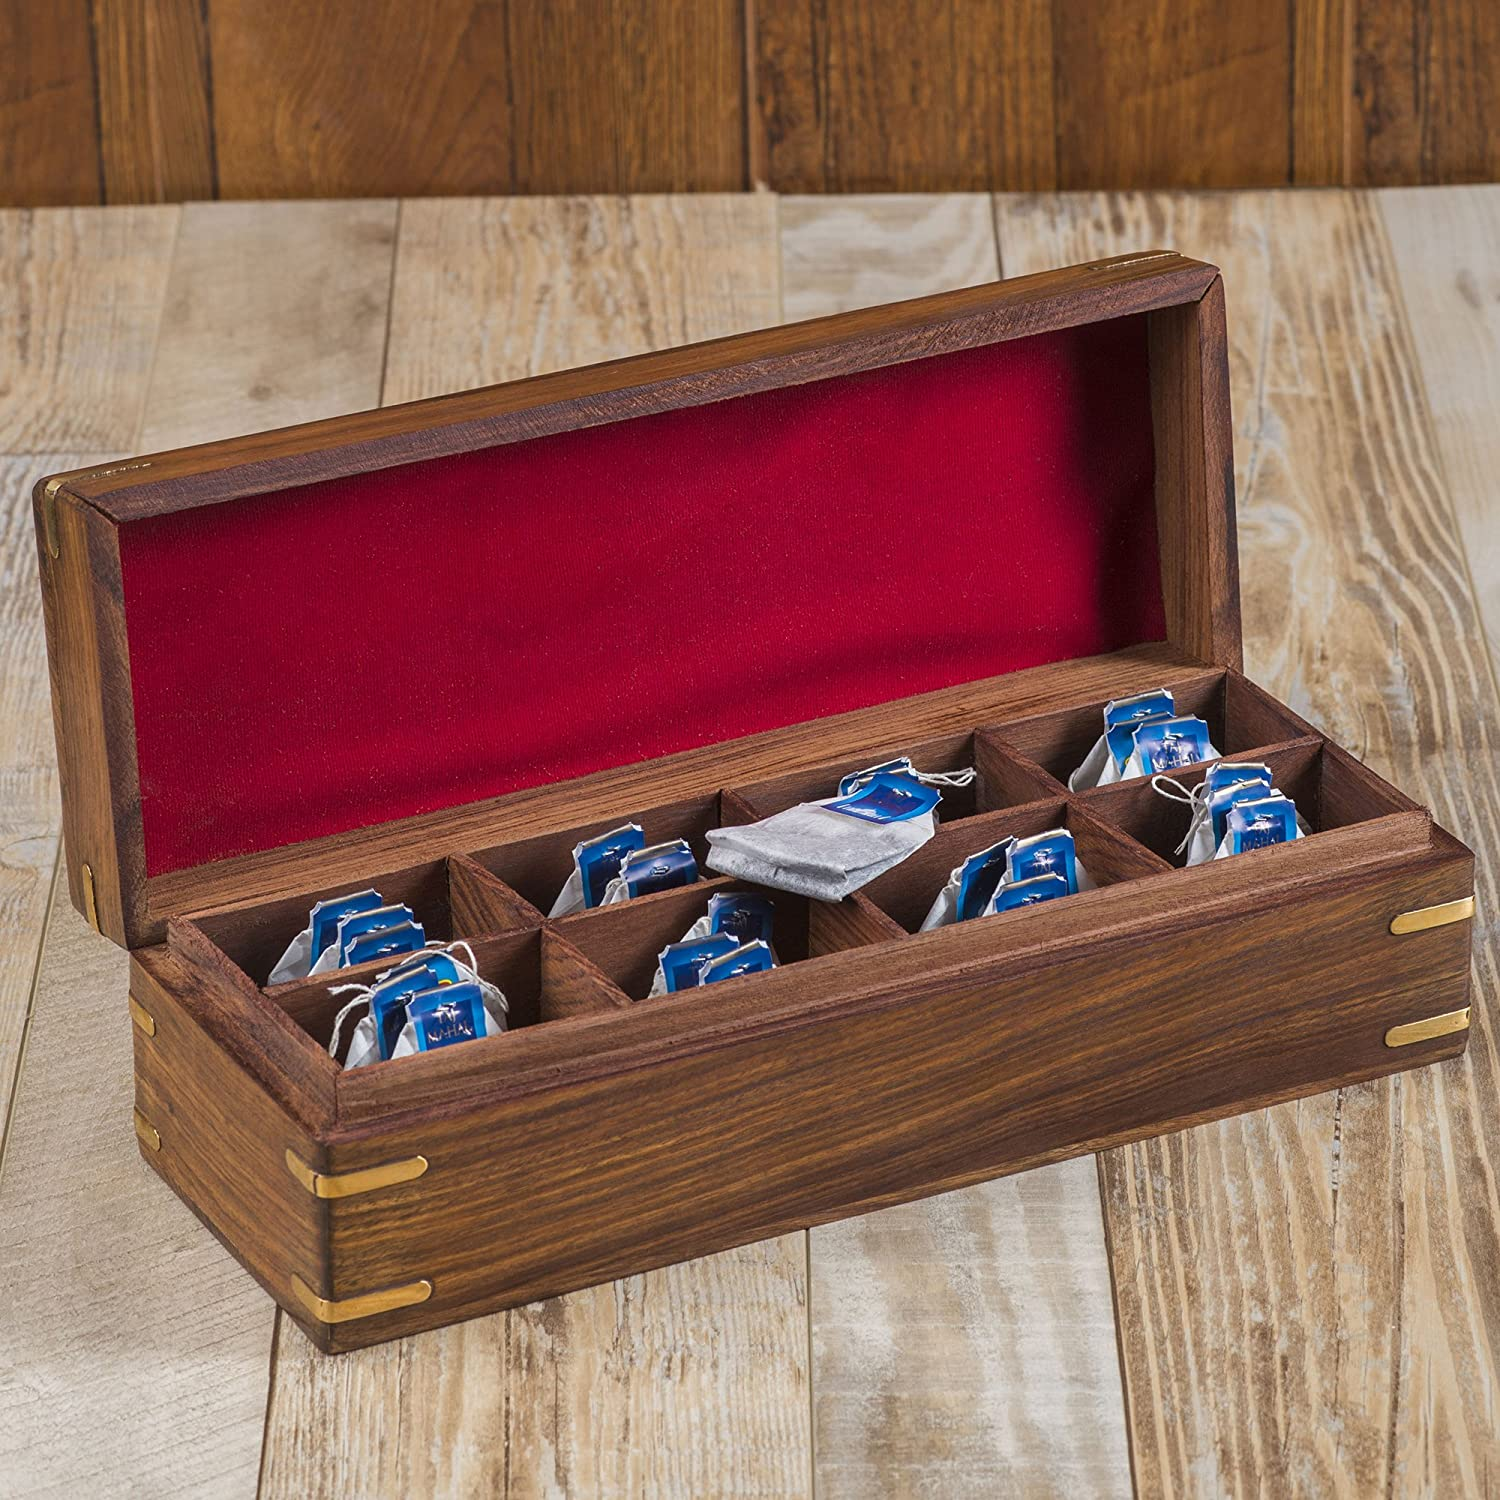 Rusticity Wooden Tea Box / Spice Organizer with Lid - 8 Slots | Handmade | (12x4.5 in)